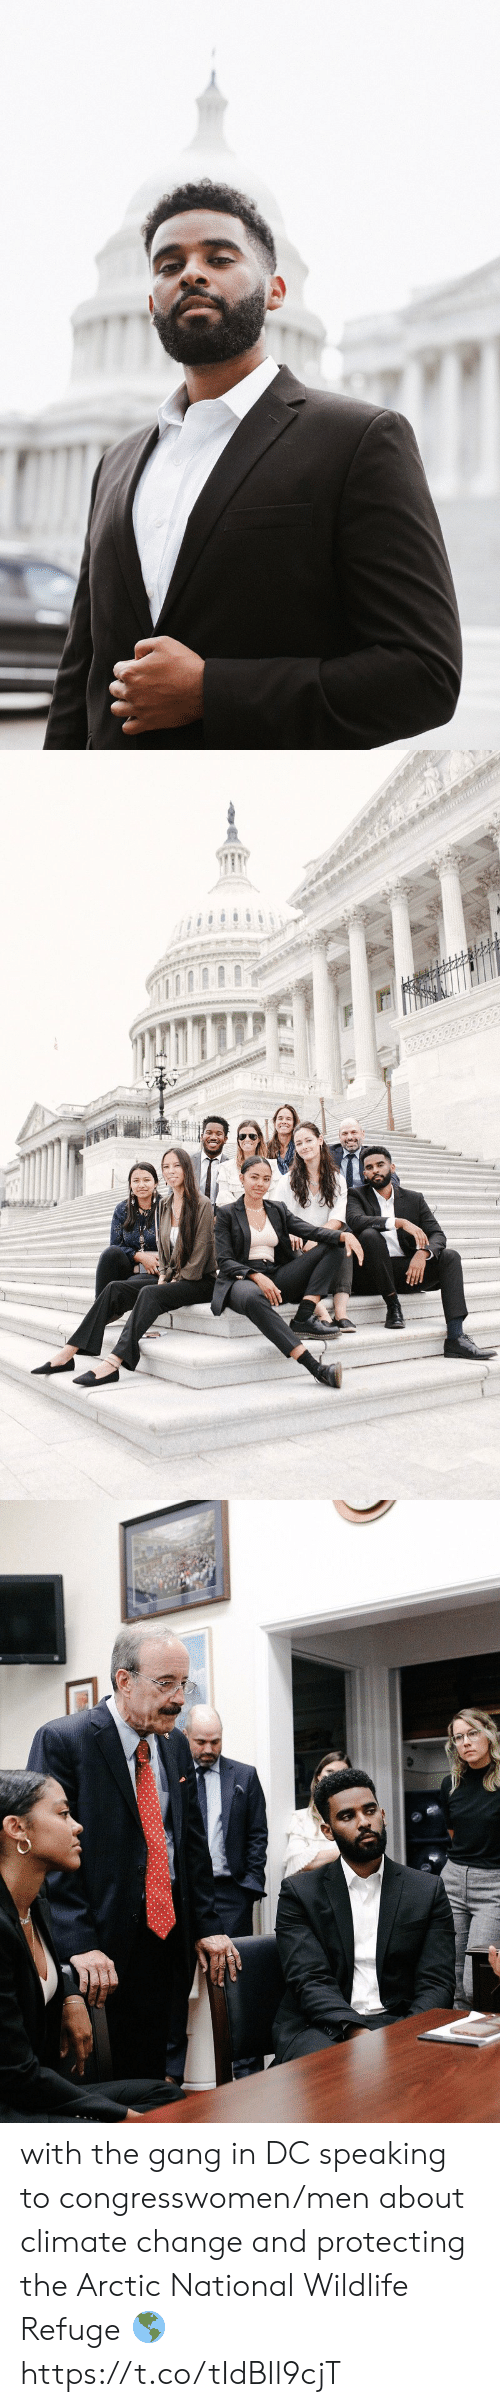 refuge: with the gang in DC speaking to congresswomen/men about climate change and protecting the Arctic National Wildlife Refuge 🌎 https://t.co/tIdBIl9cjT